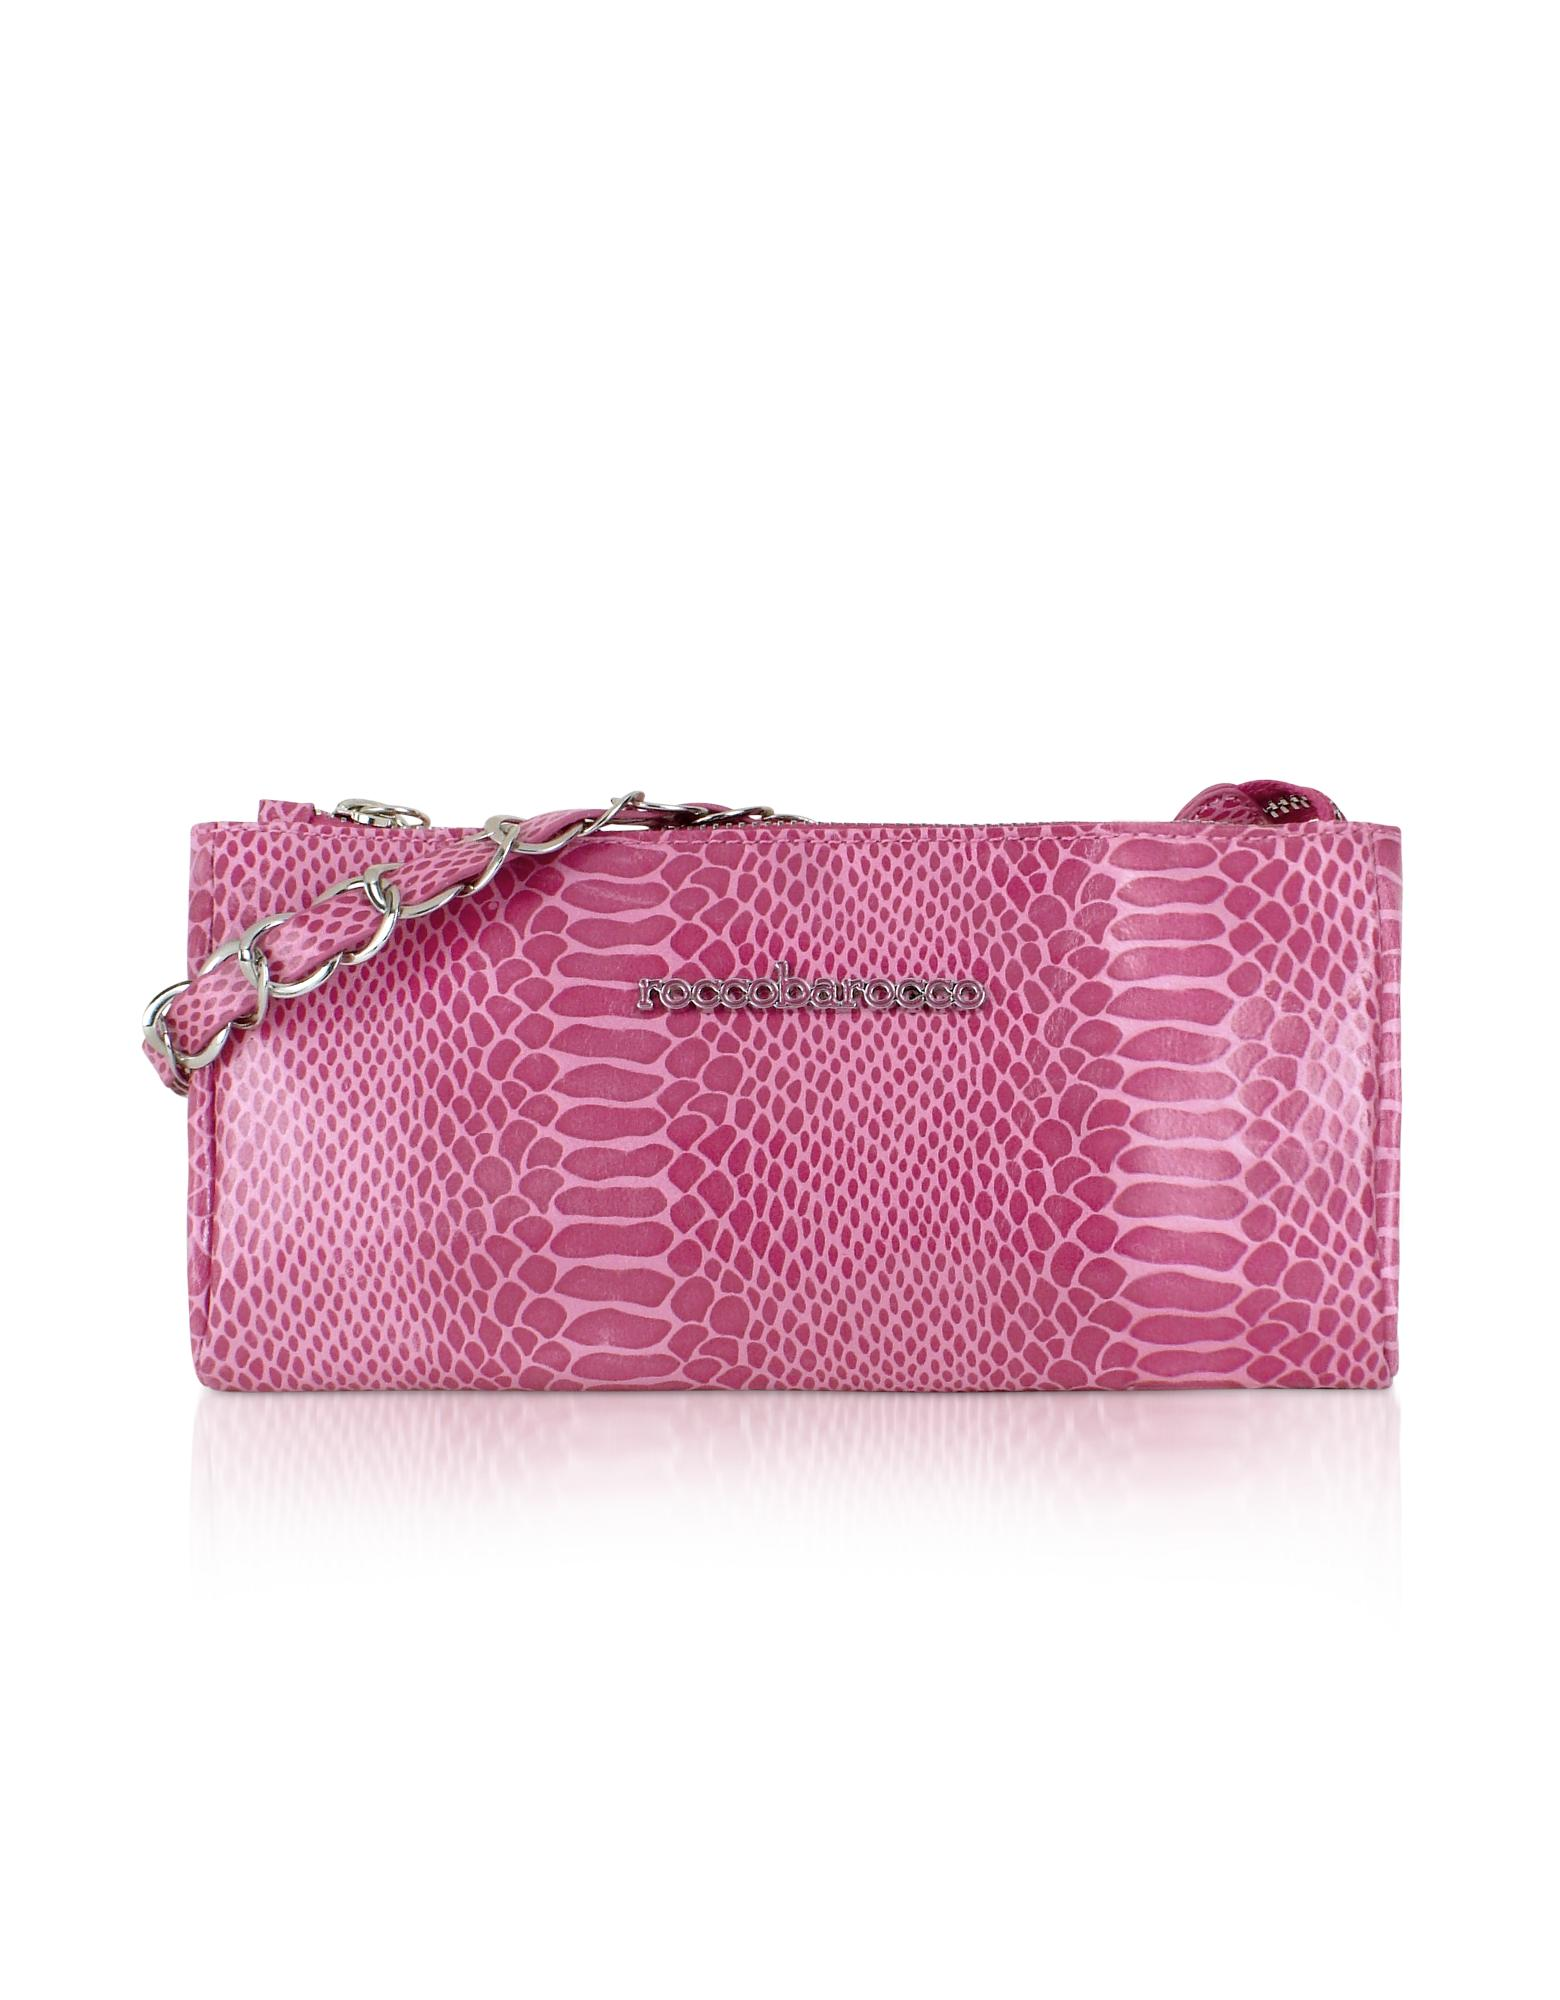 This bright pink baguette bag with its python design is perfectly aligned.